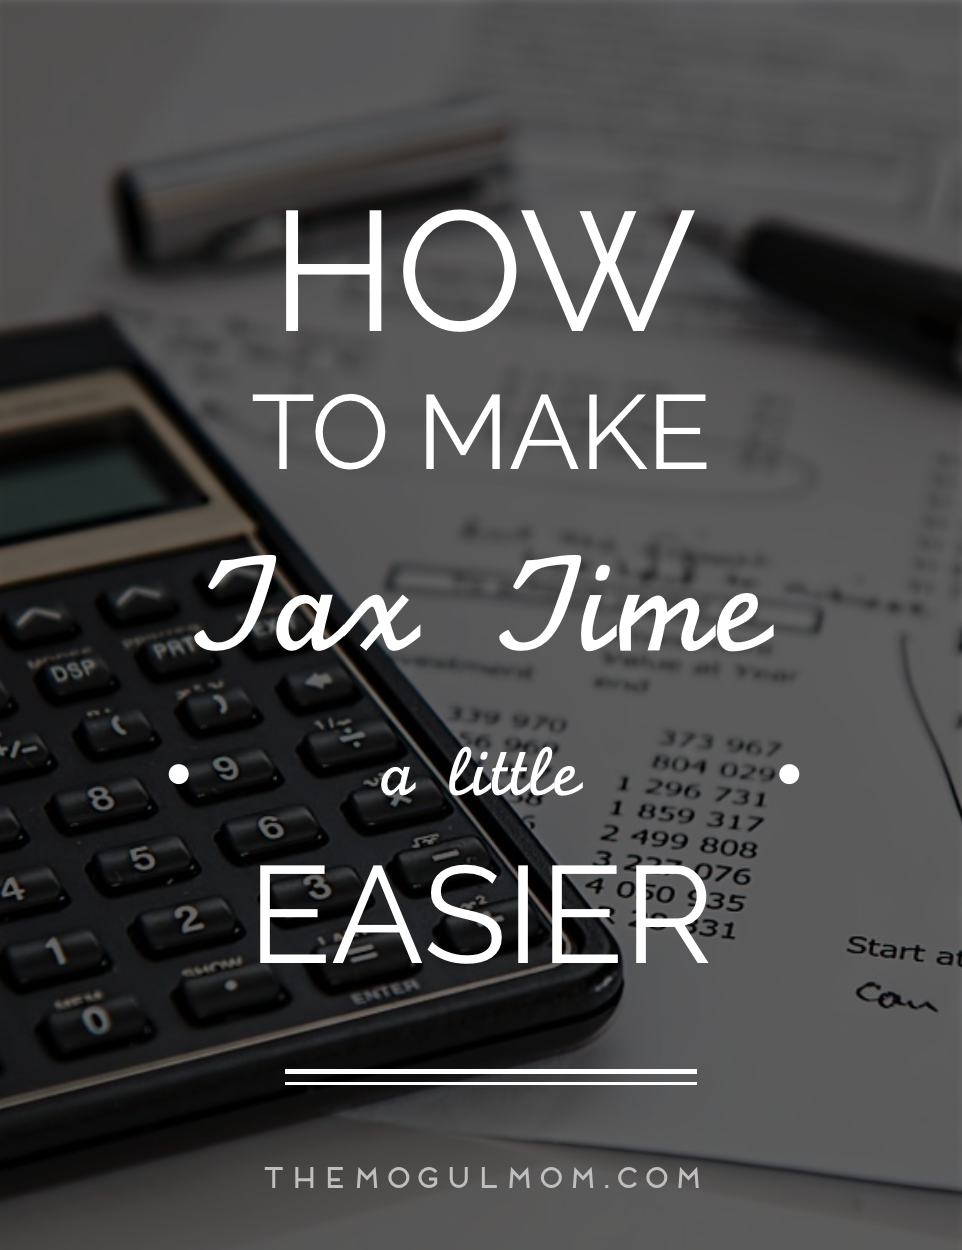 The Best Advice You'll Get This Tax Season